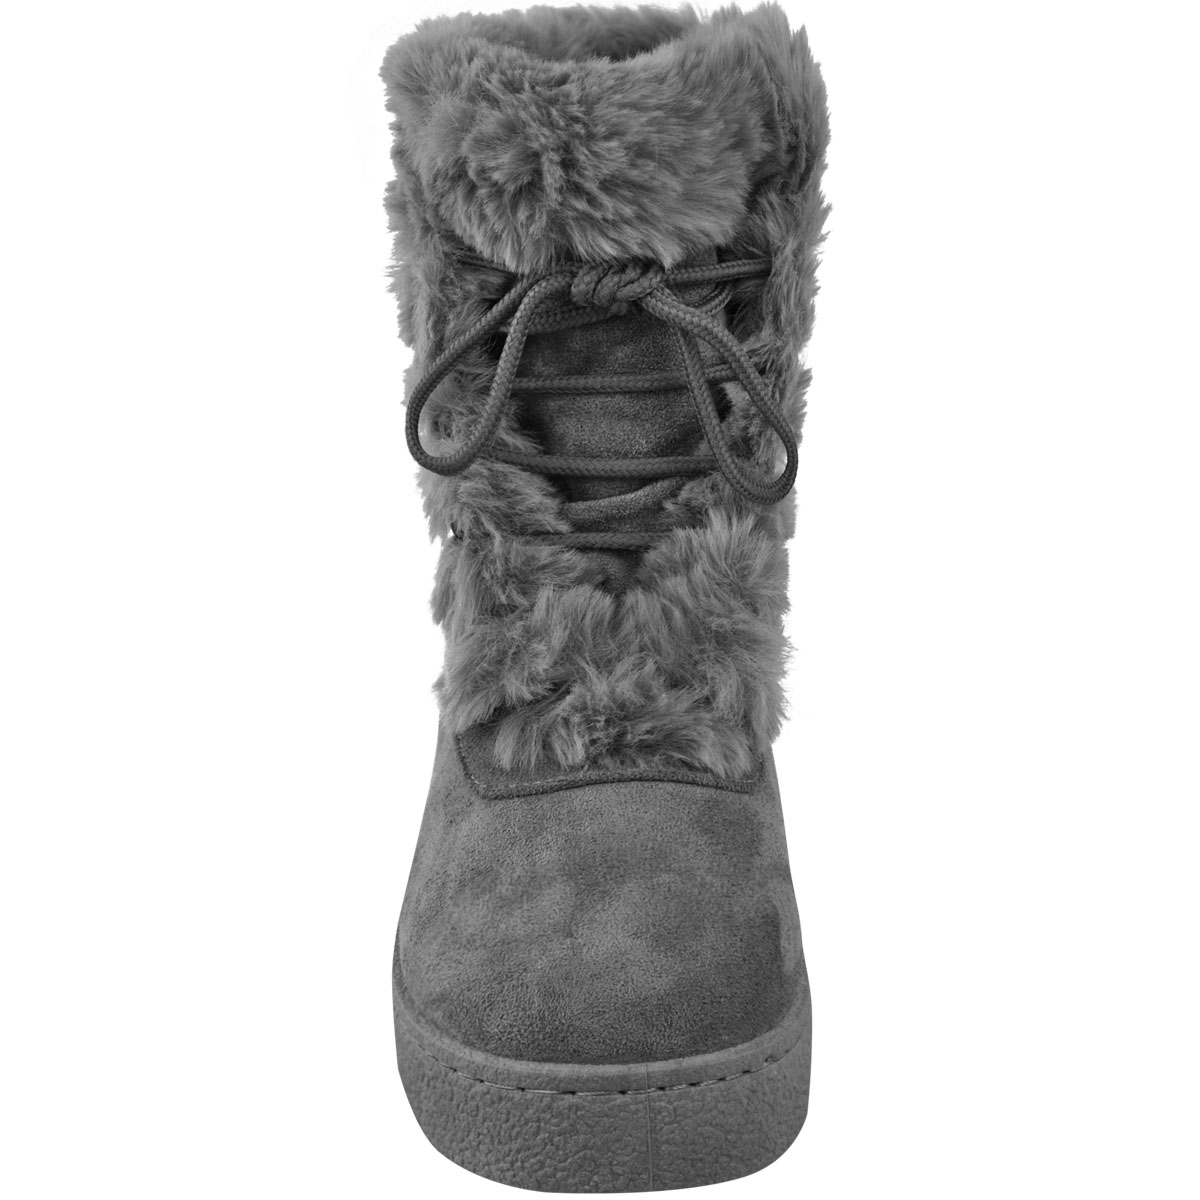 Find great deals on eBay for faux fur lined boots. Shop with confidence.